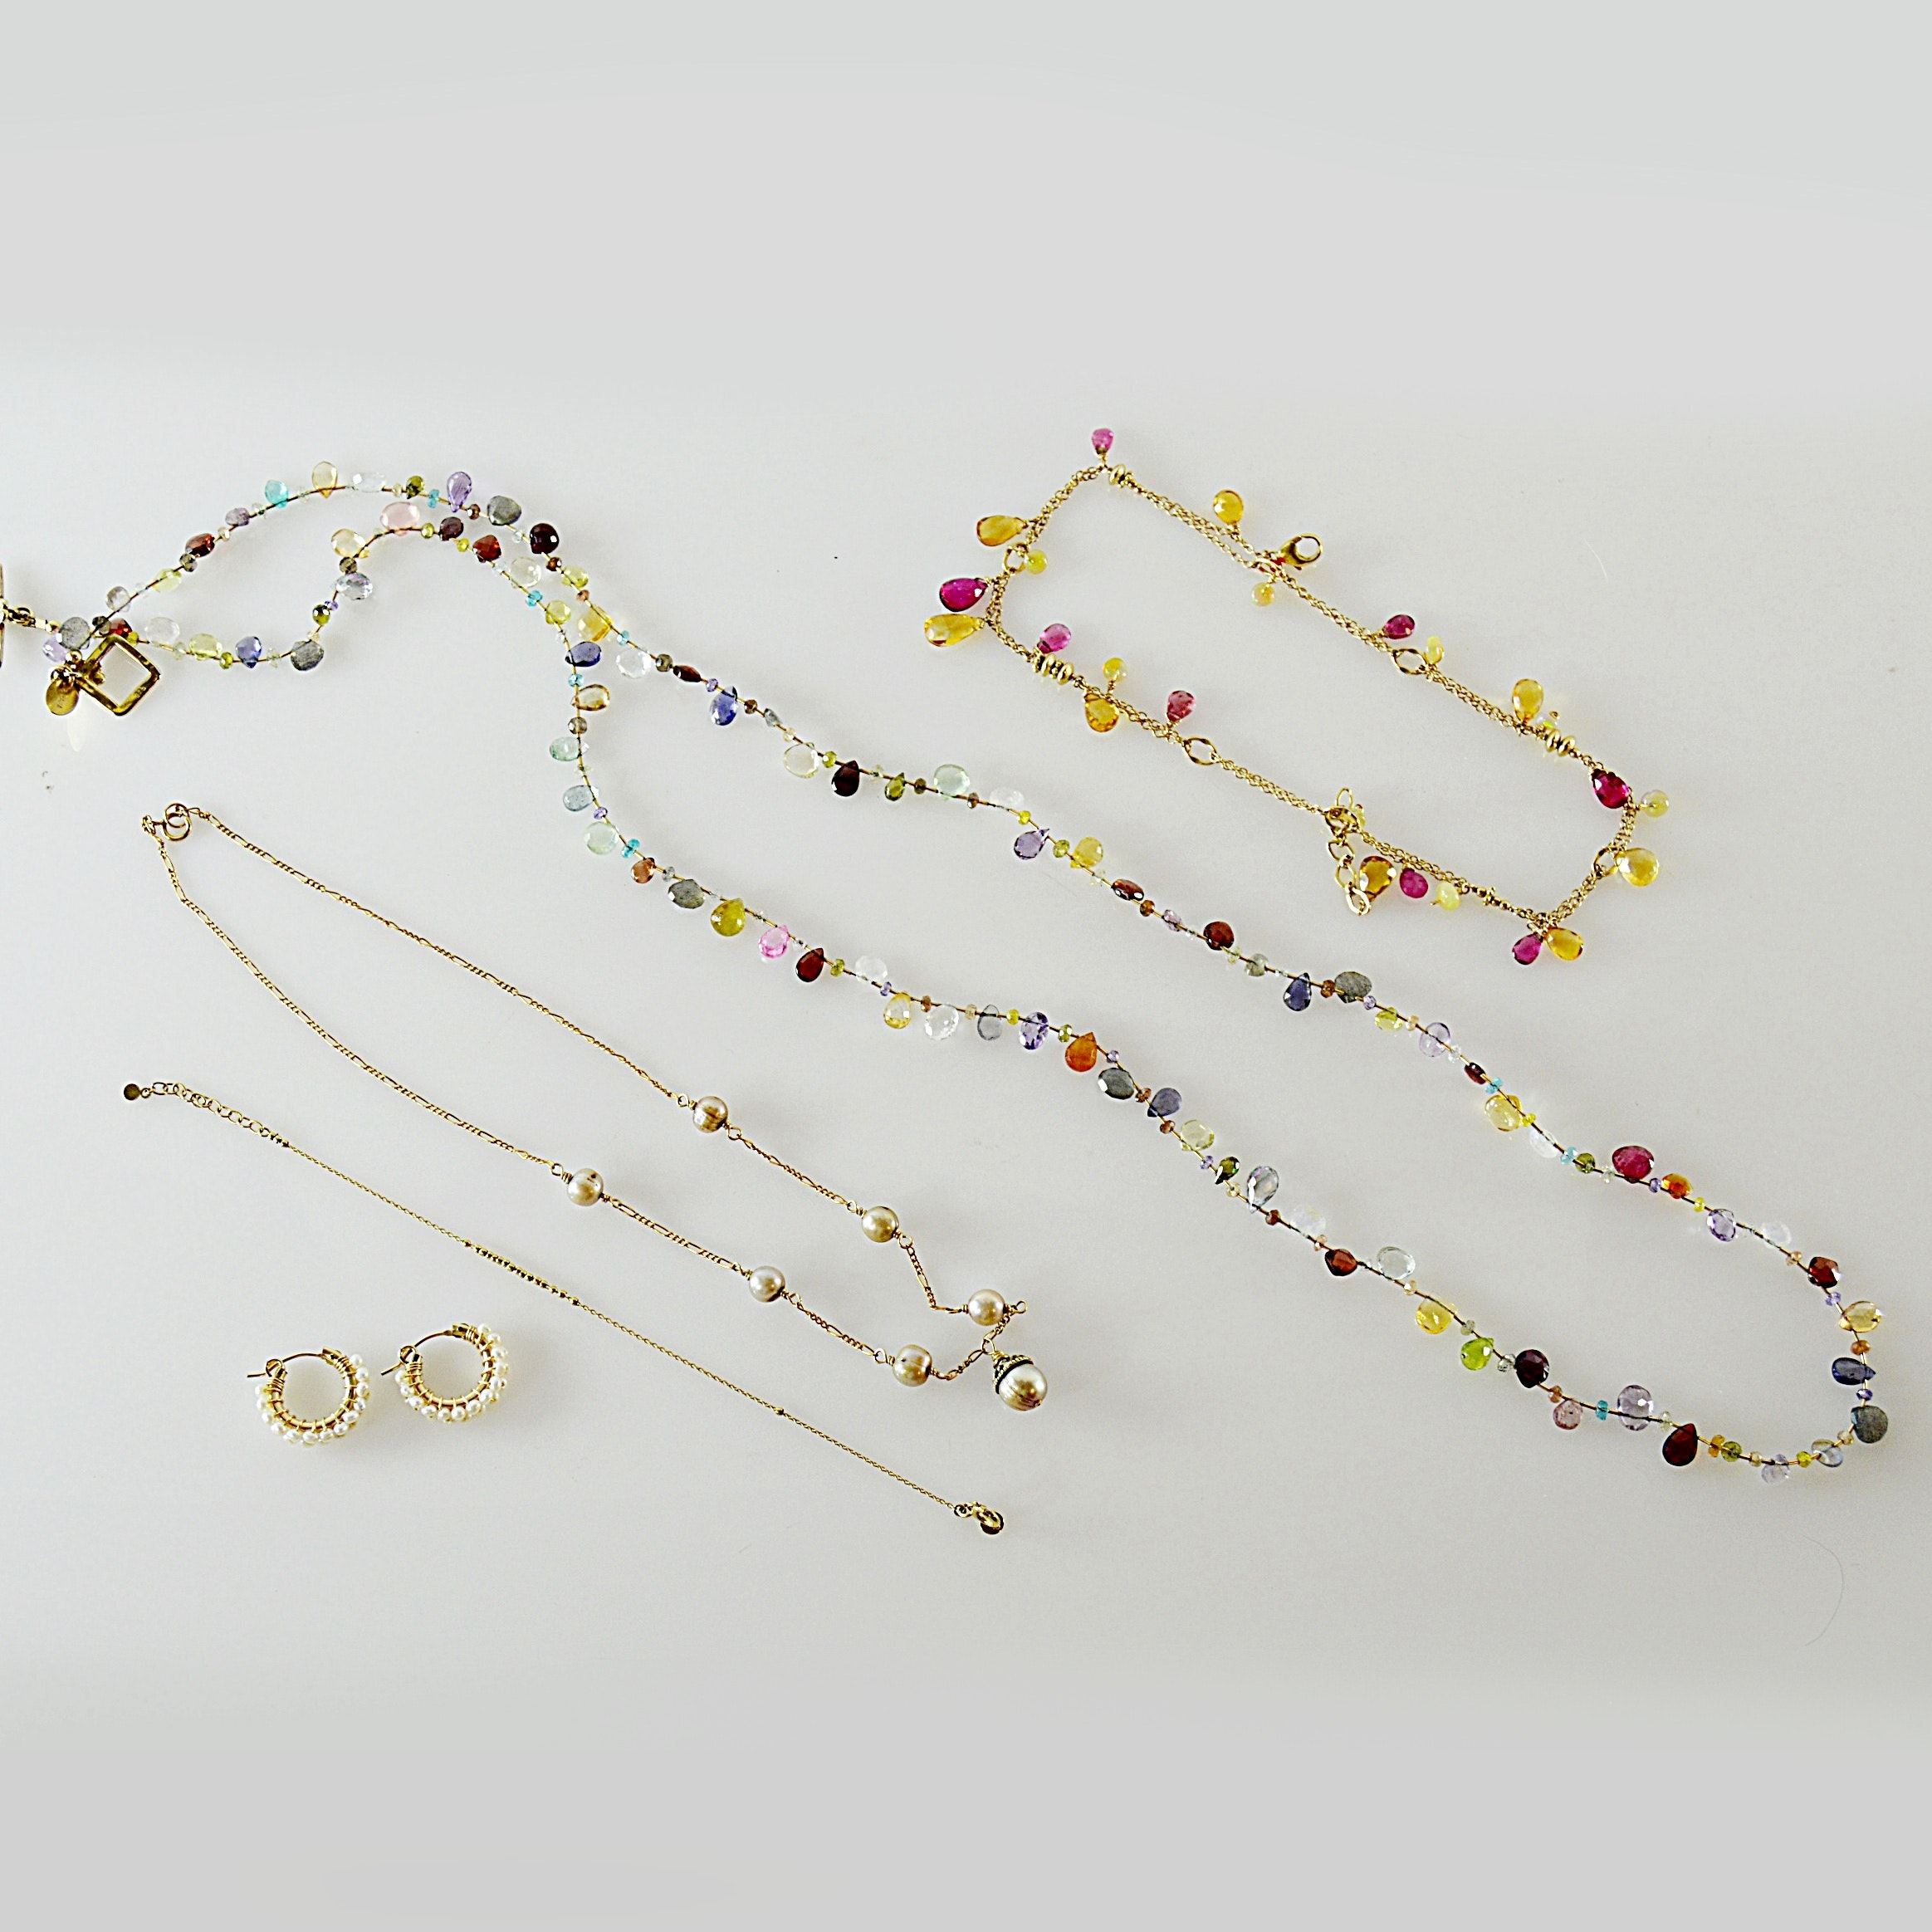 Cultured Pearl Necklace and Earrings, Multi-Color Stone Jewelry